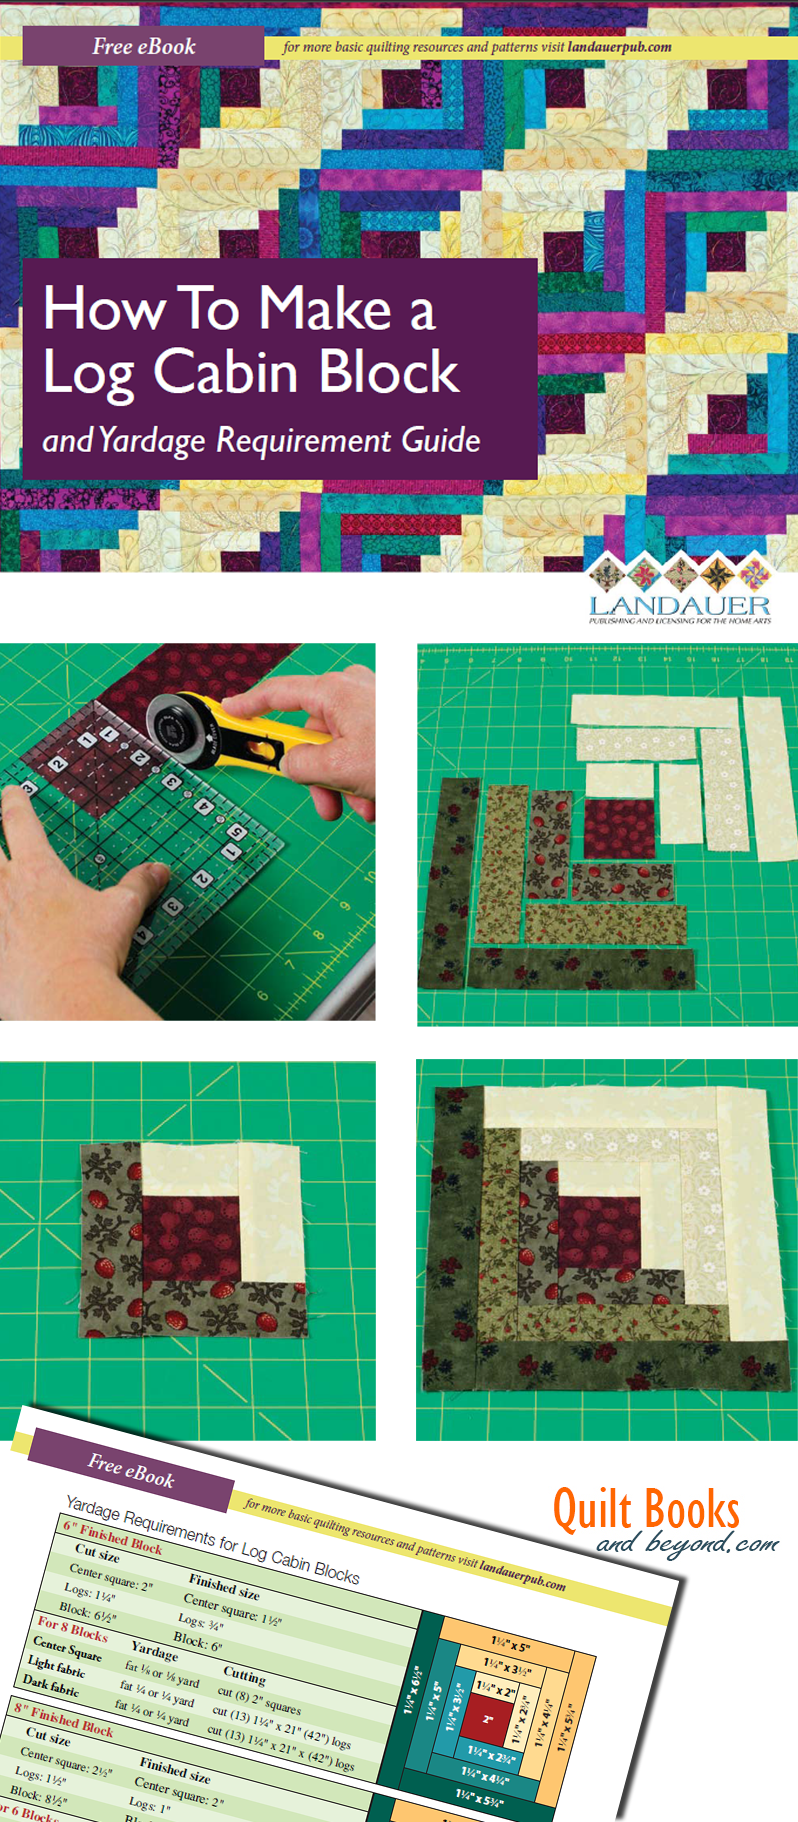 Free eBook How to Make a Log Cabin Quilt Block with Yardage Requirement Guide